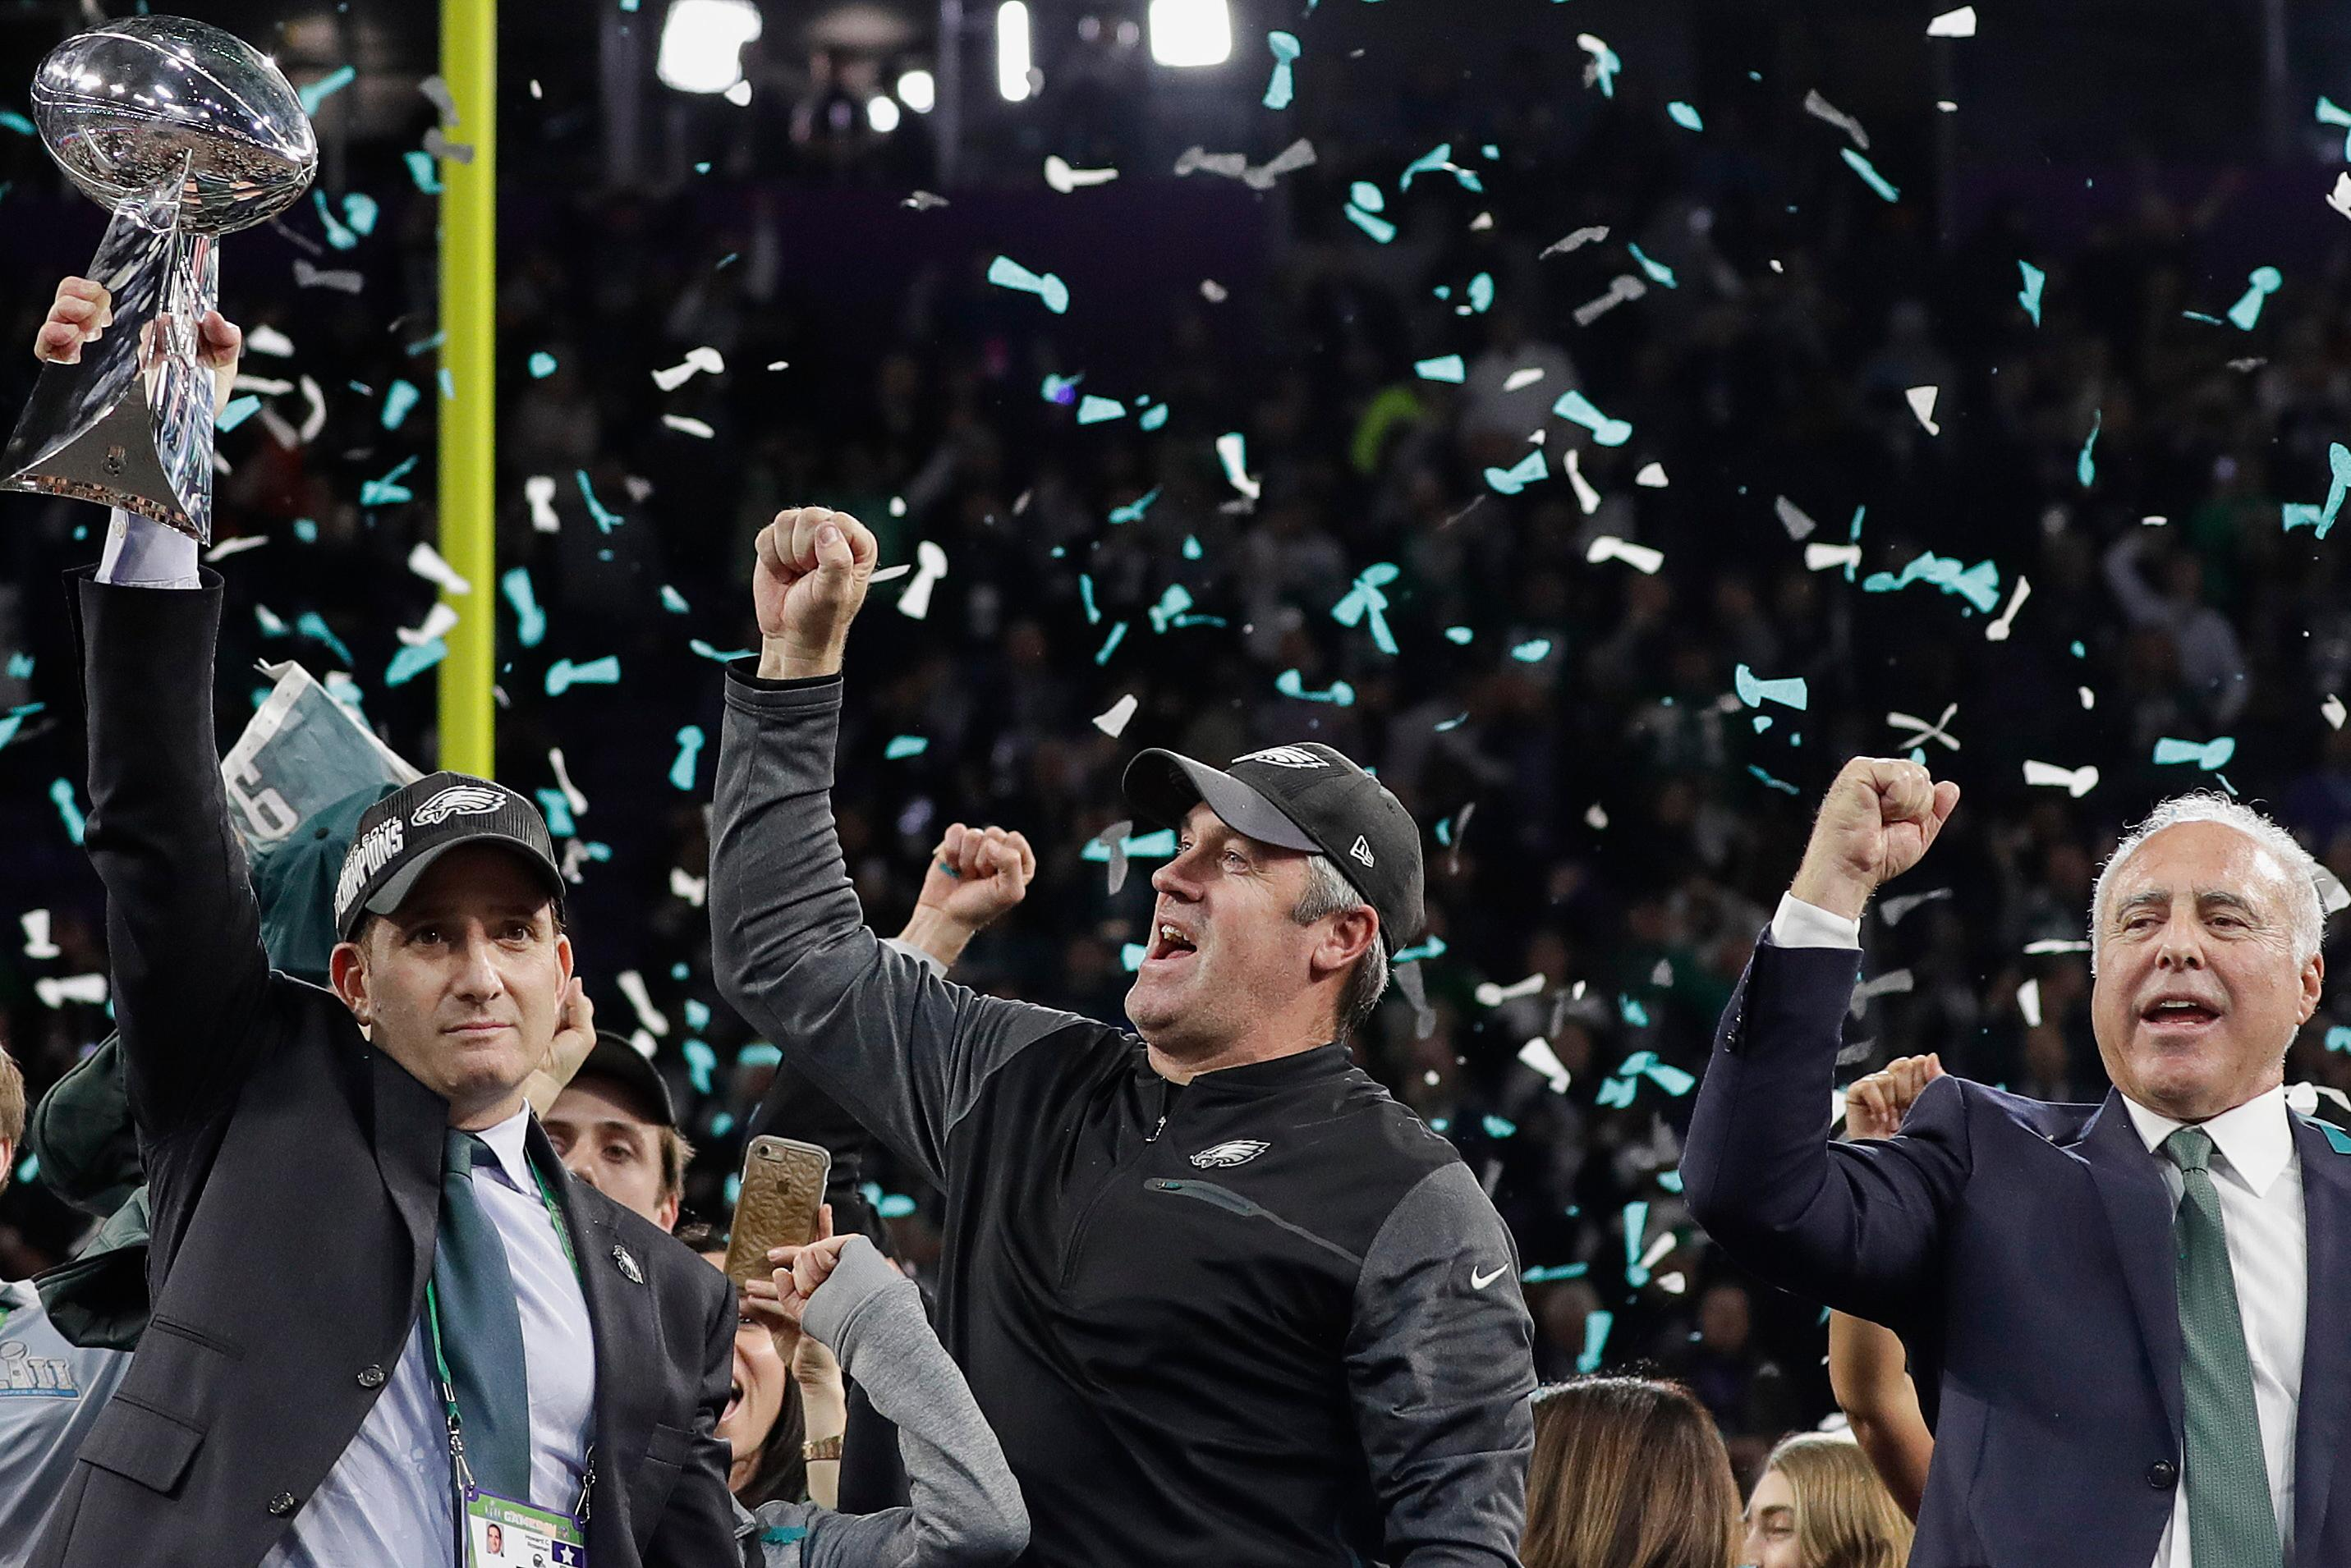 Philadelphia Eagles general manager Howie Roseman, left, holds up the Vince Lombardi Trophy as he celebrates with head coach Doug Pederson, center, and owner Jeffrey Lurie after the NFL Super Bowl 52 football game against the New England Patriots, Sunday, Feb. 4, 2018, in Minneapolis. The Eagles won 41-33. (AP Photo/Matt Slocum)